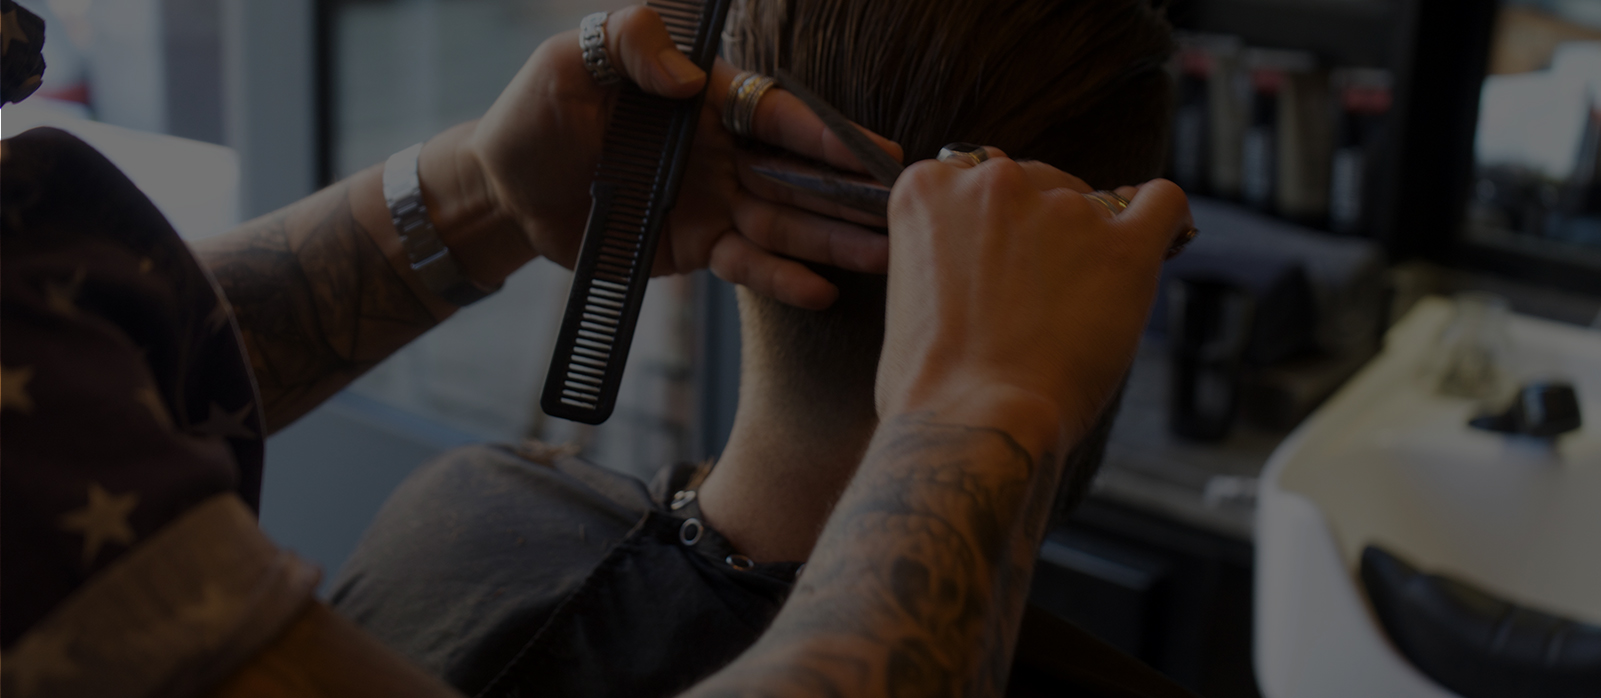 https://www.portersbarbers.co.uk/wp-content/uploads/img01.jpg